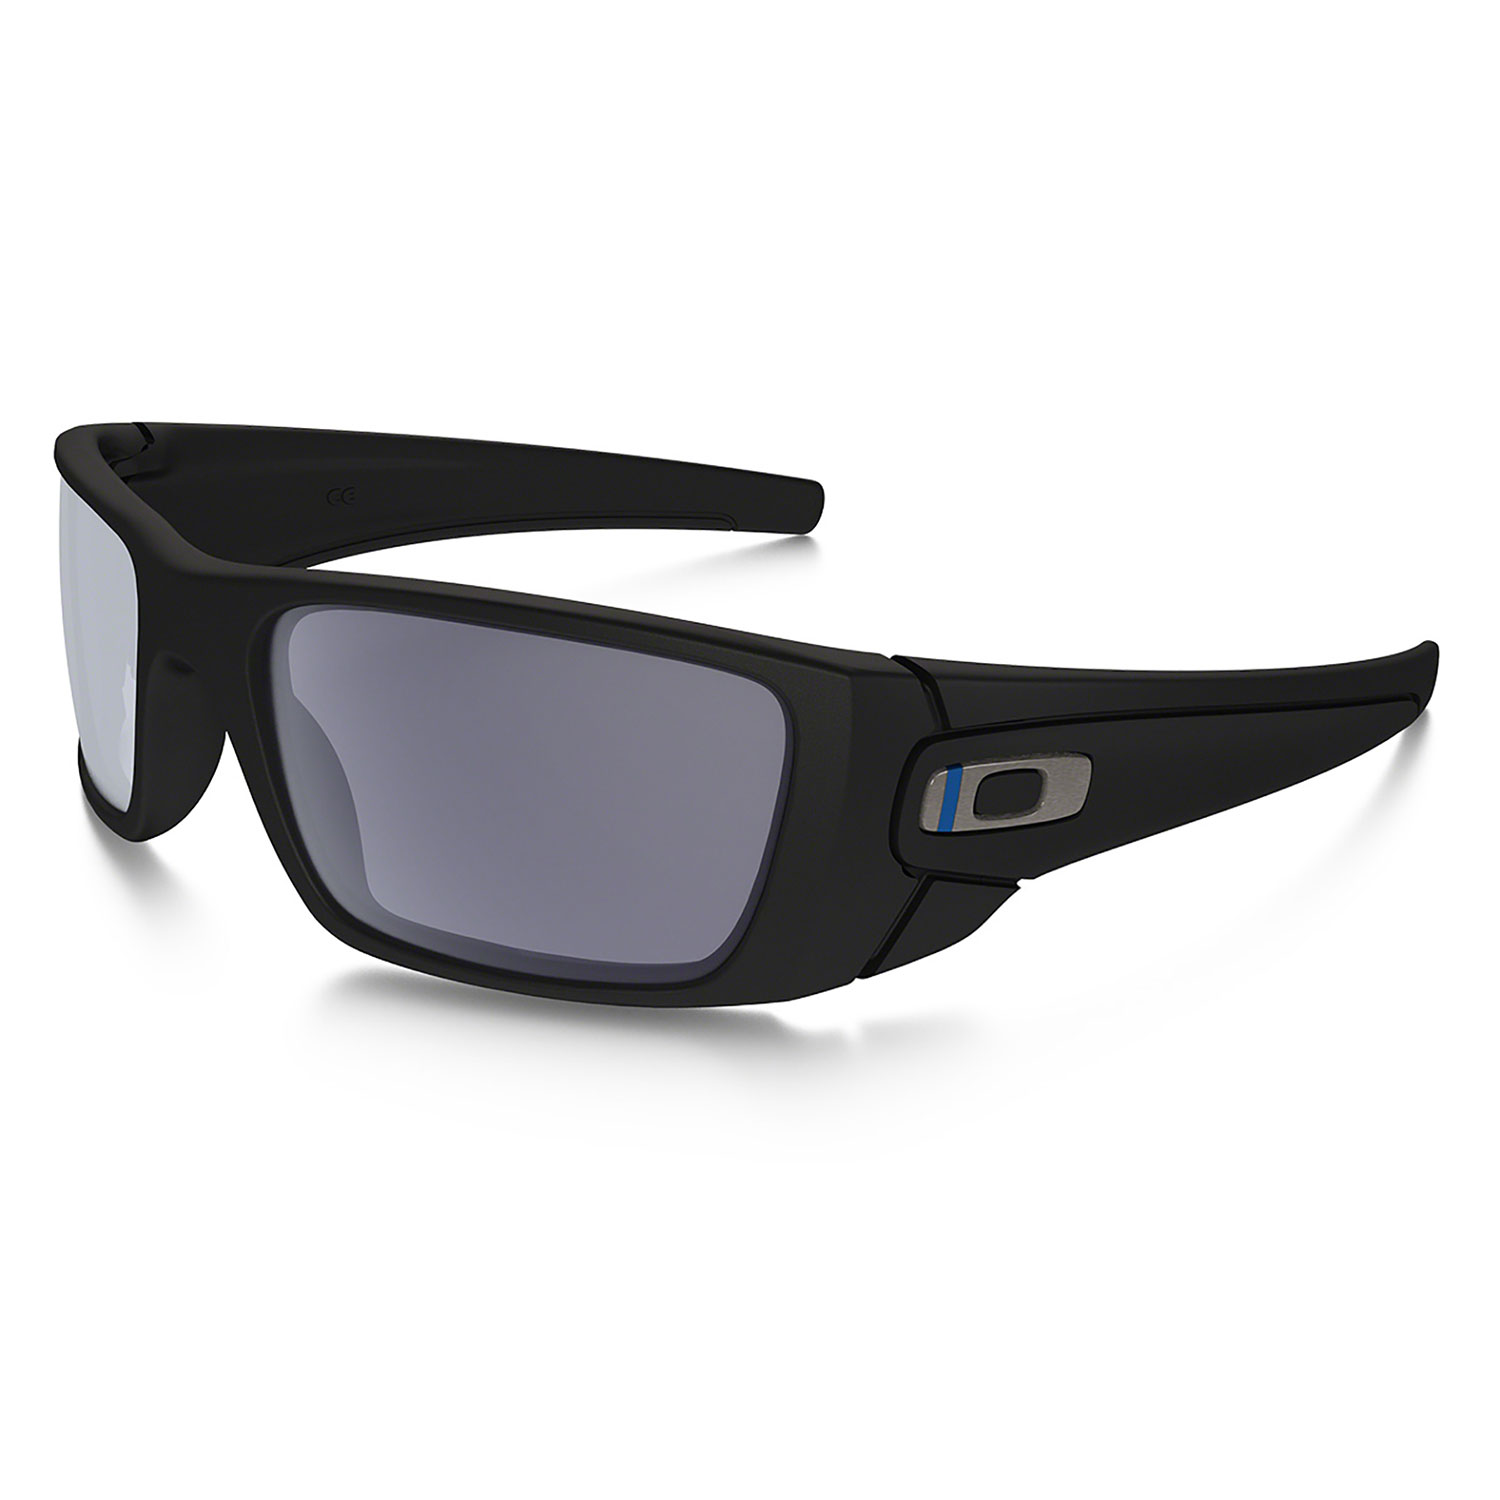 9b18e21b0b7 Oakley SI FUEL CELL THIN BLUE LINE BL BK W GREY